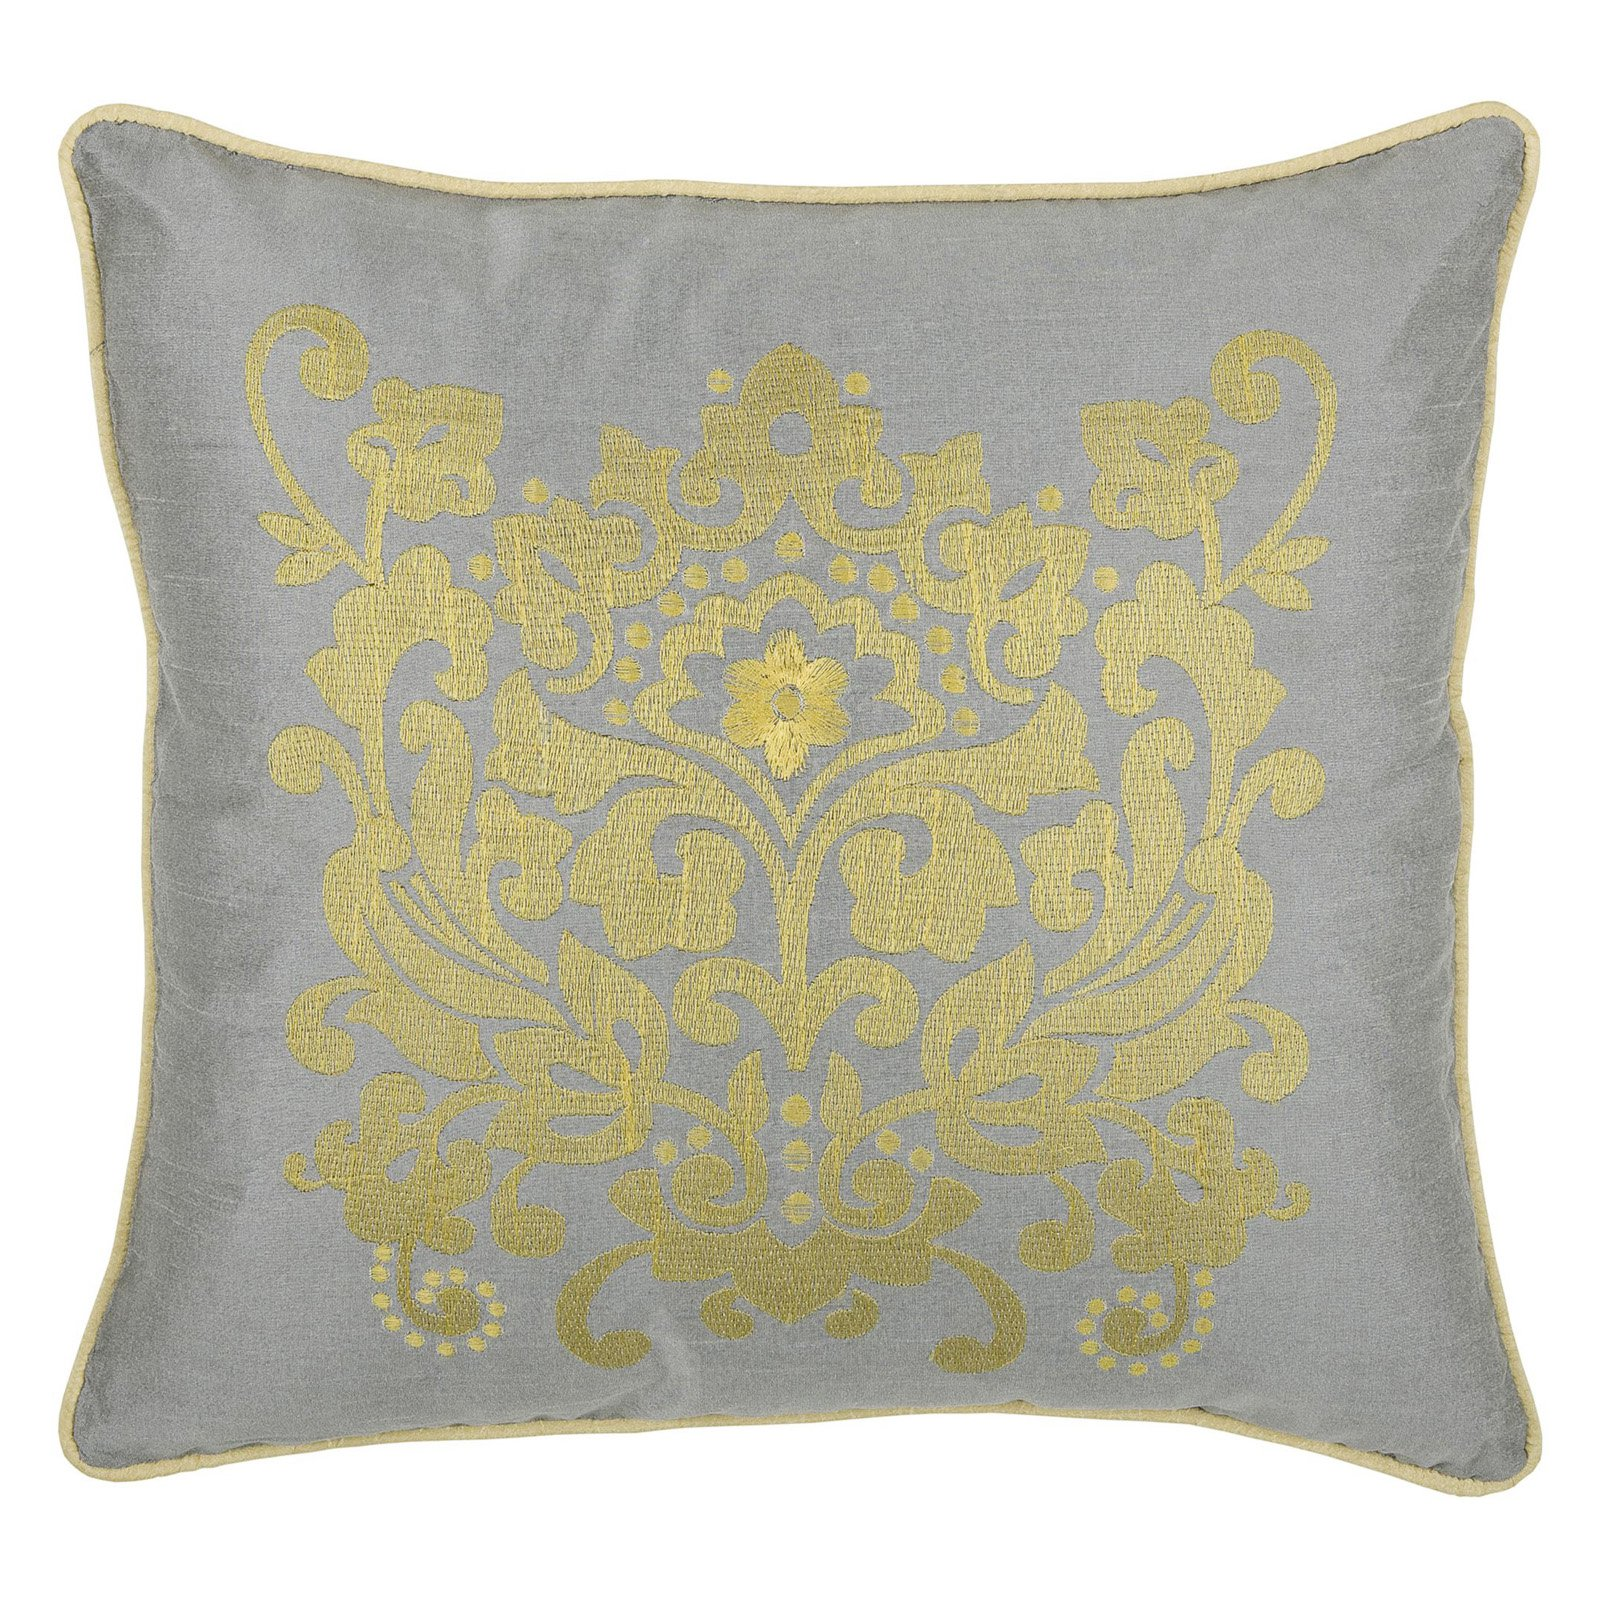 """Rizzy Home medallion18"""" x 18""""Polyester decorative filled pillow"""